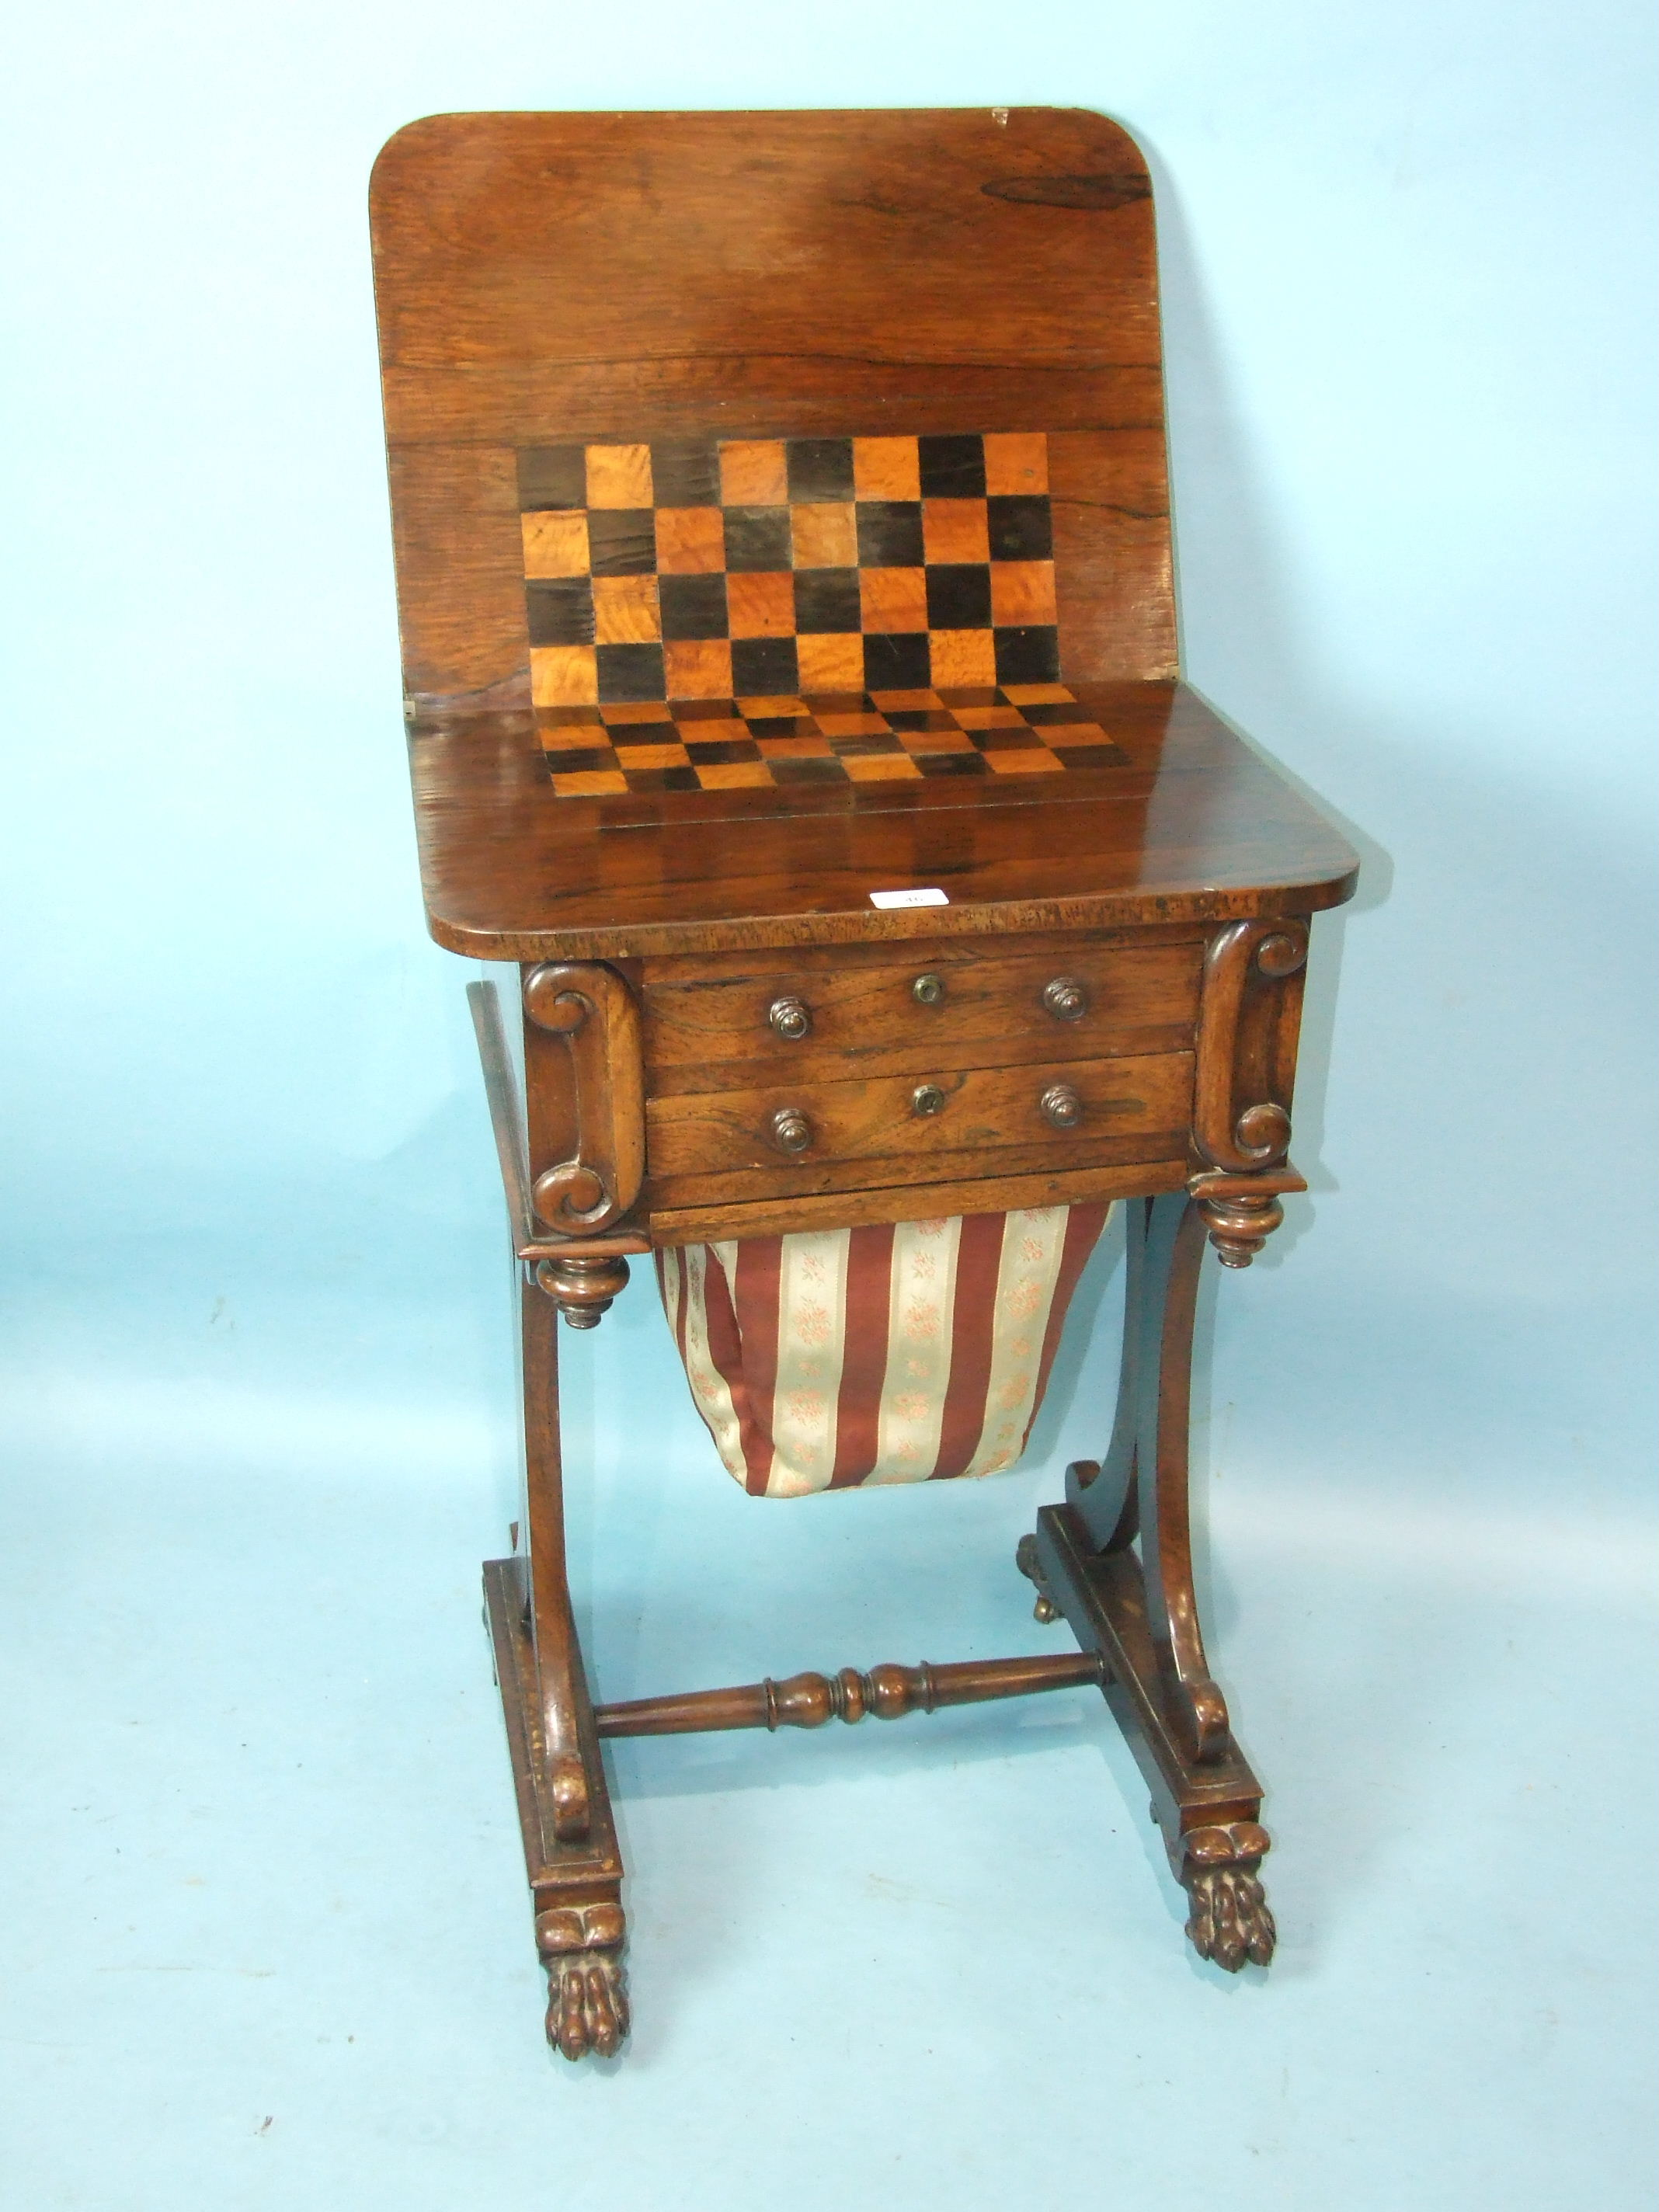 An early-19th century rosewood games and work table, the folding swivel top with satinwood and ebony - Image 2 of 2